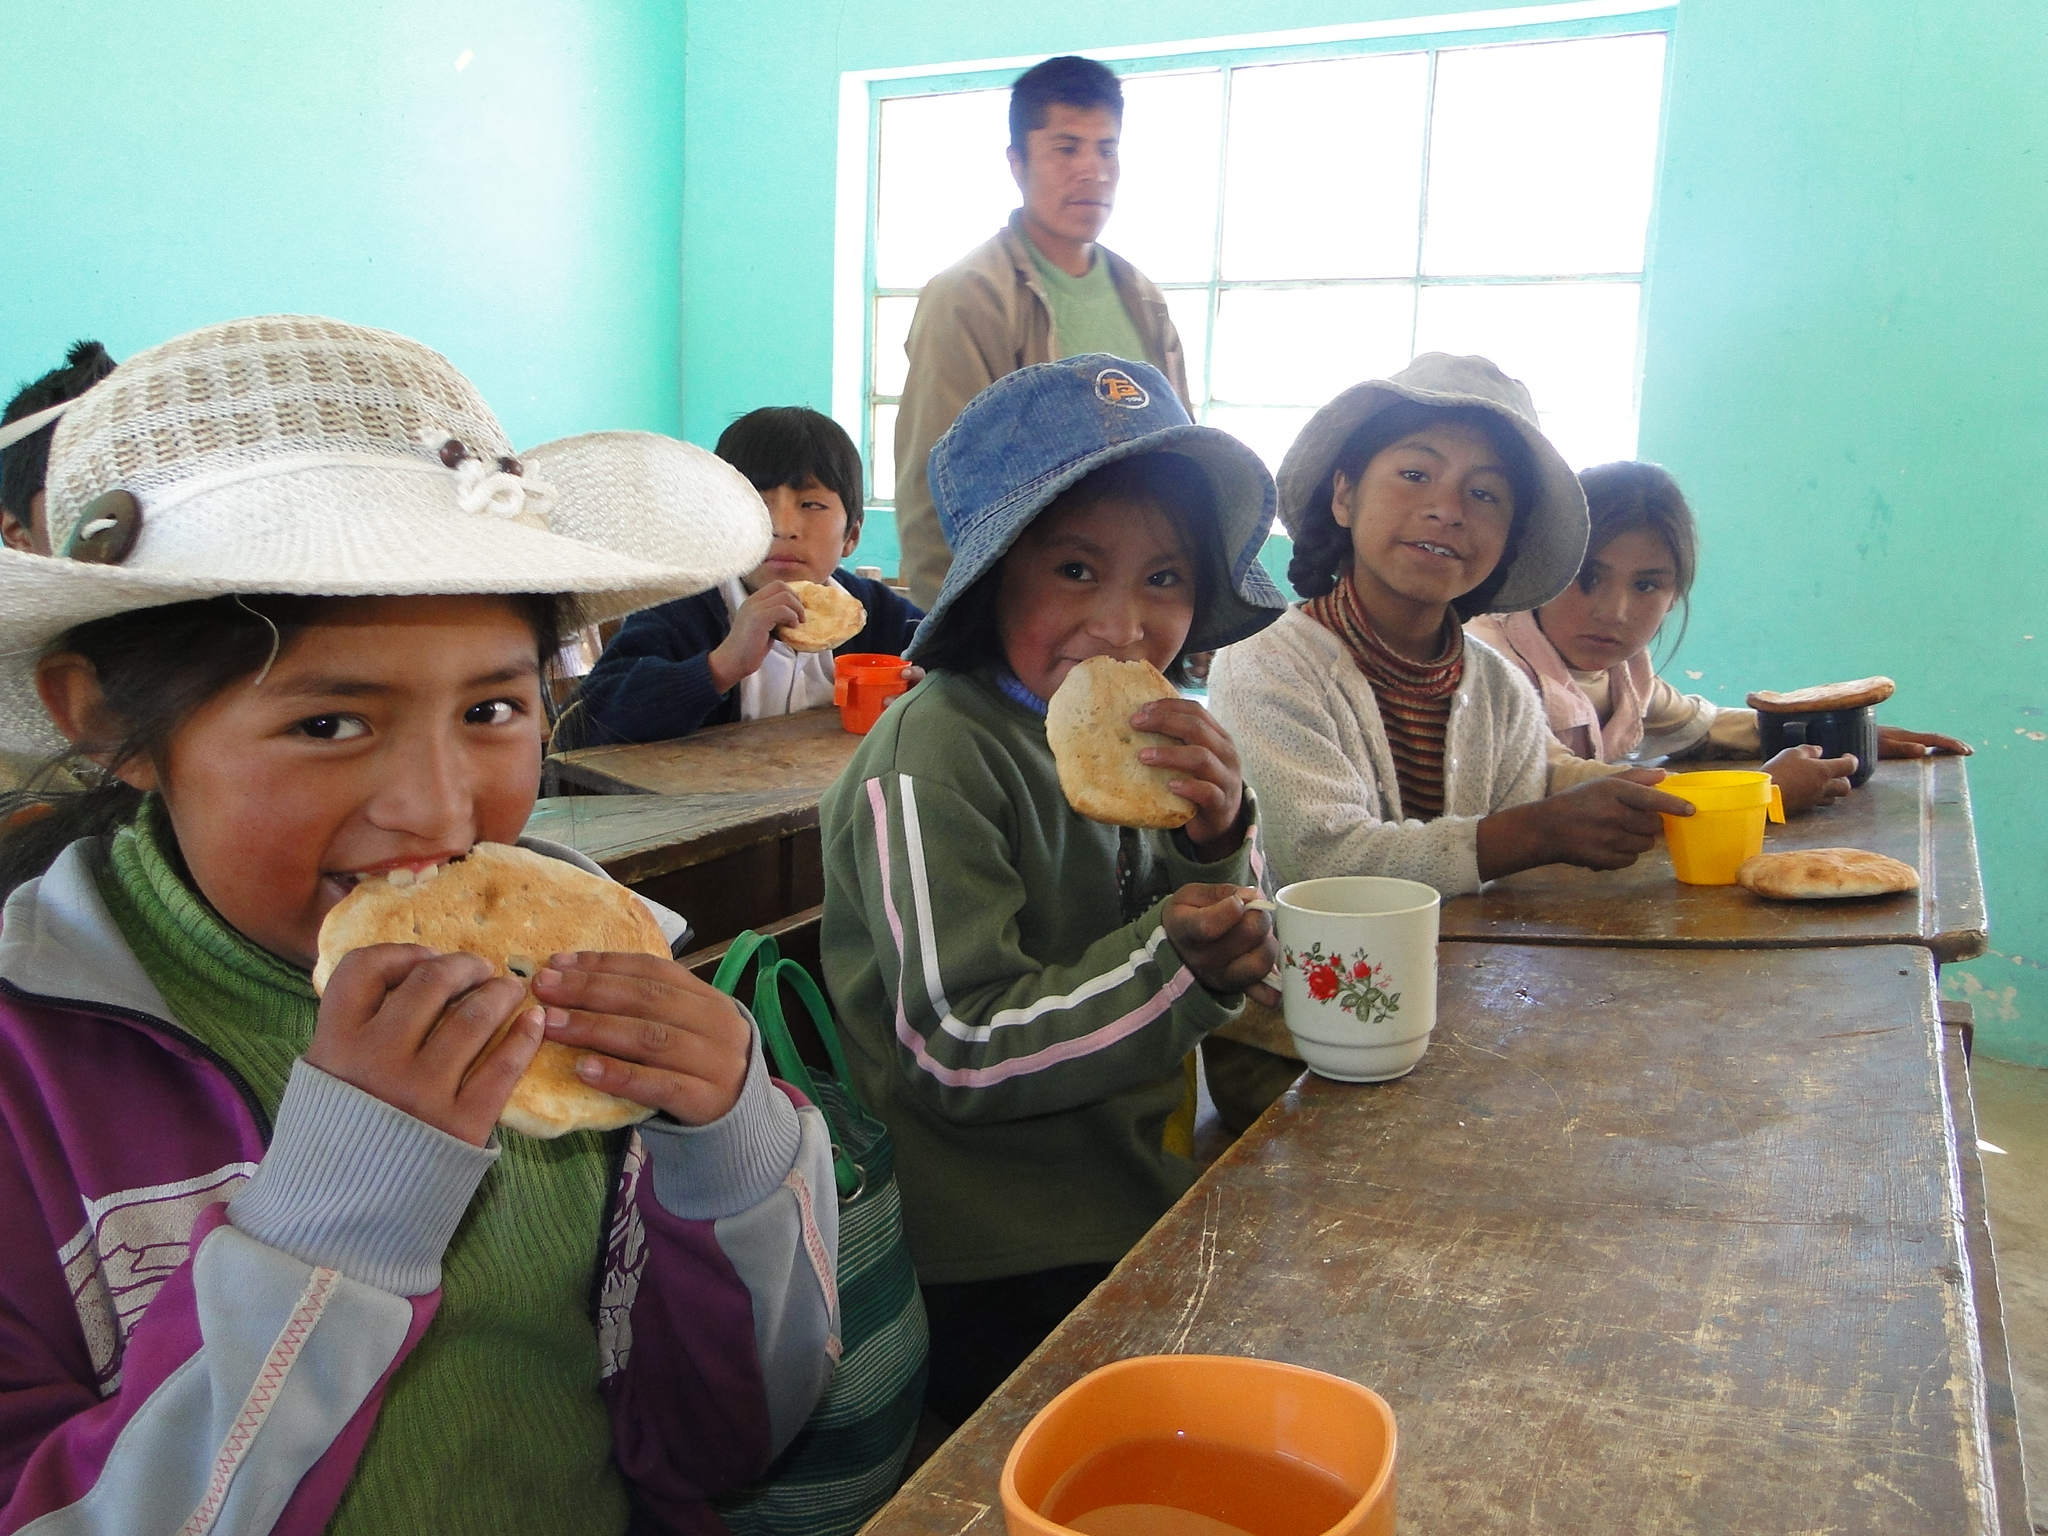 providing-nutrition-combatting-childhood-hunger-bolivia-partnership-truvia-world-food-programme